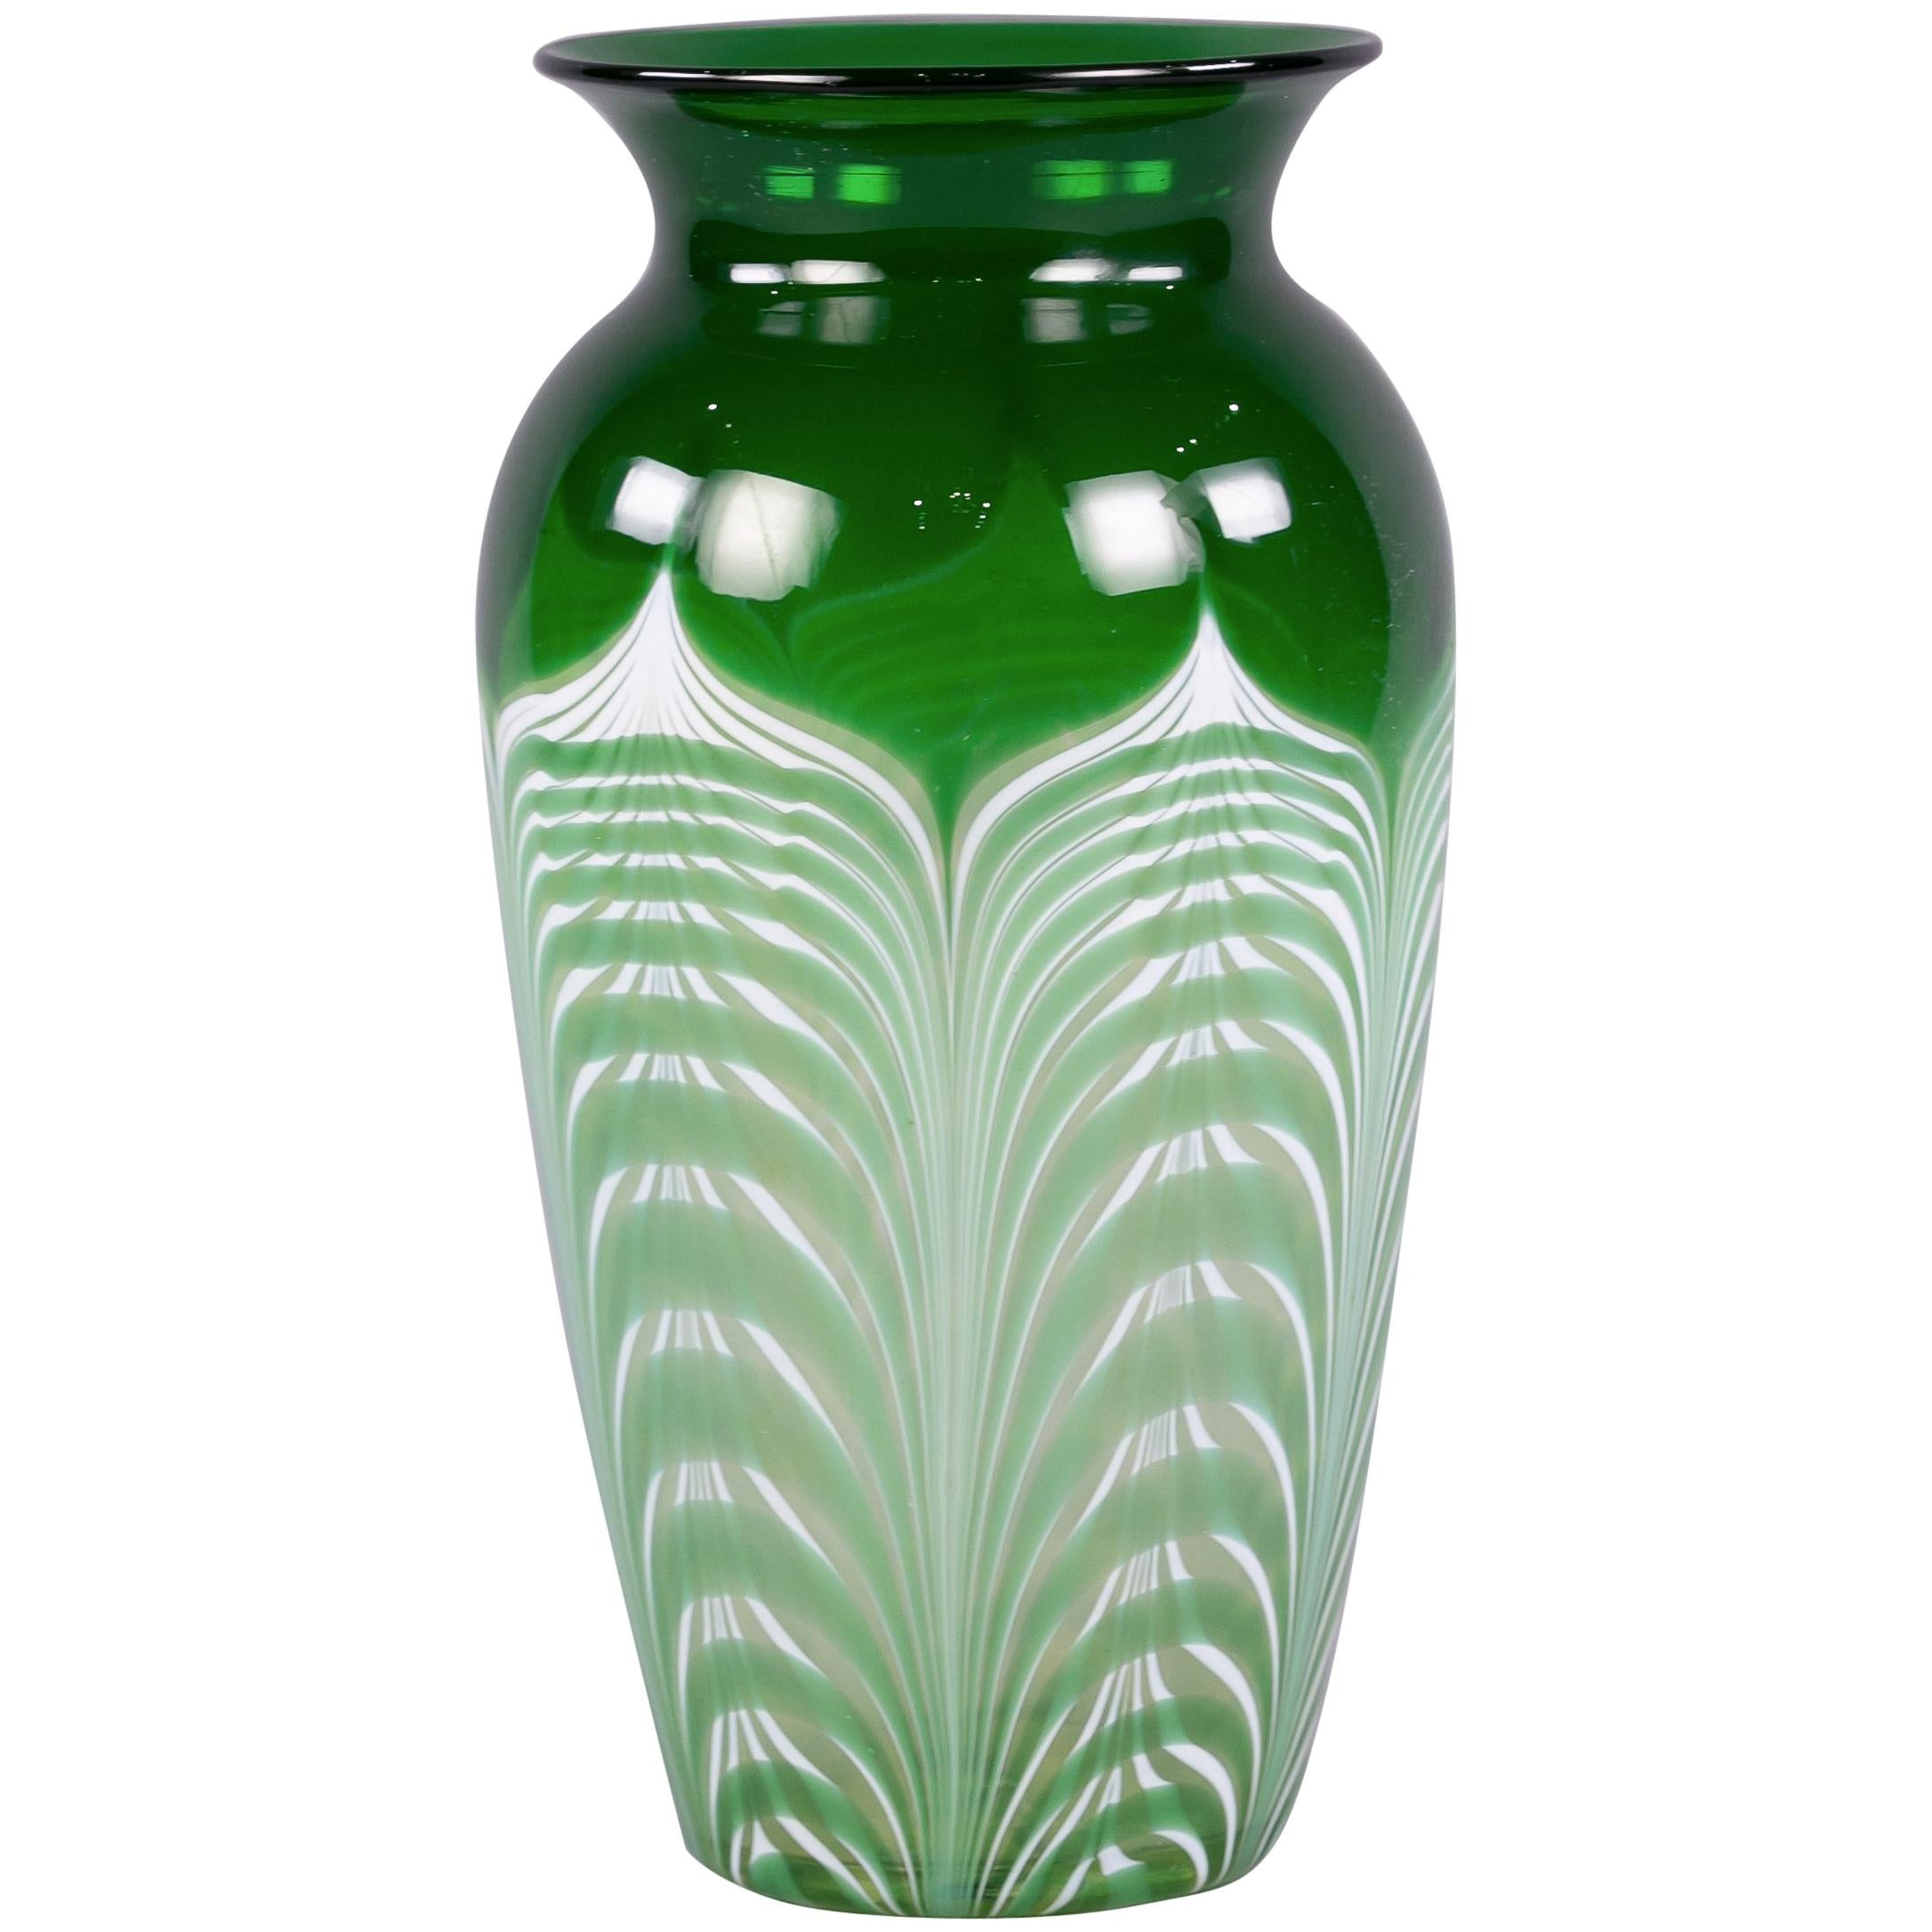 American Glass Vase, Early 20th Century